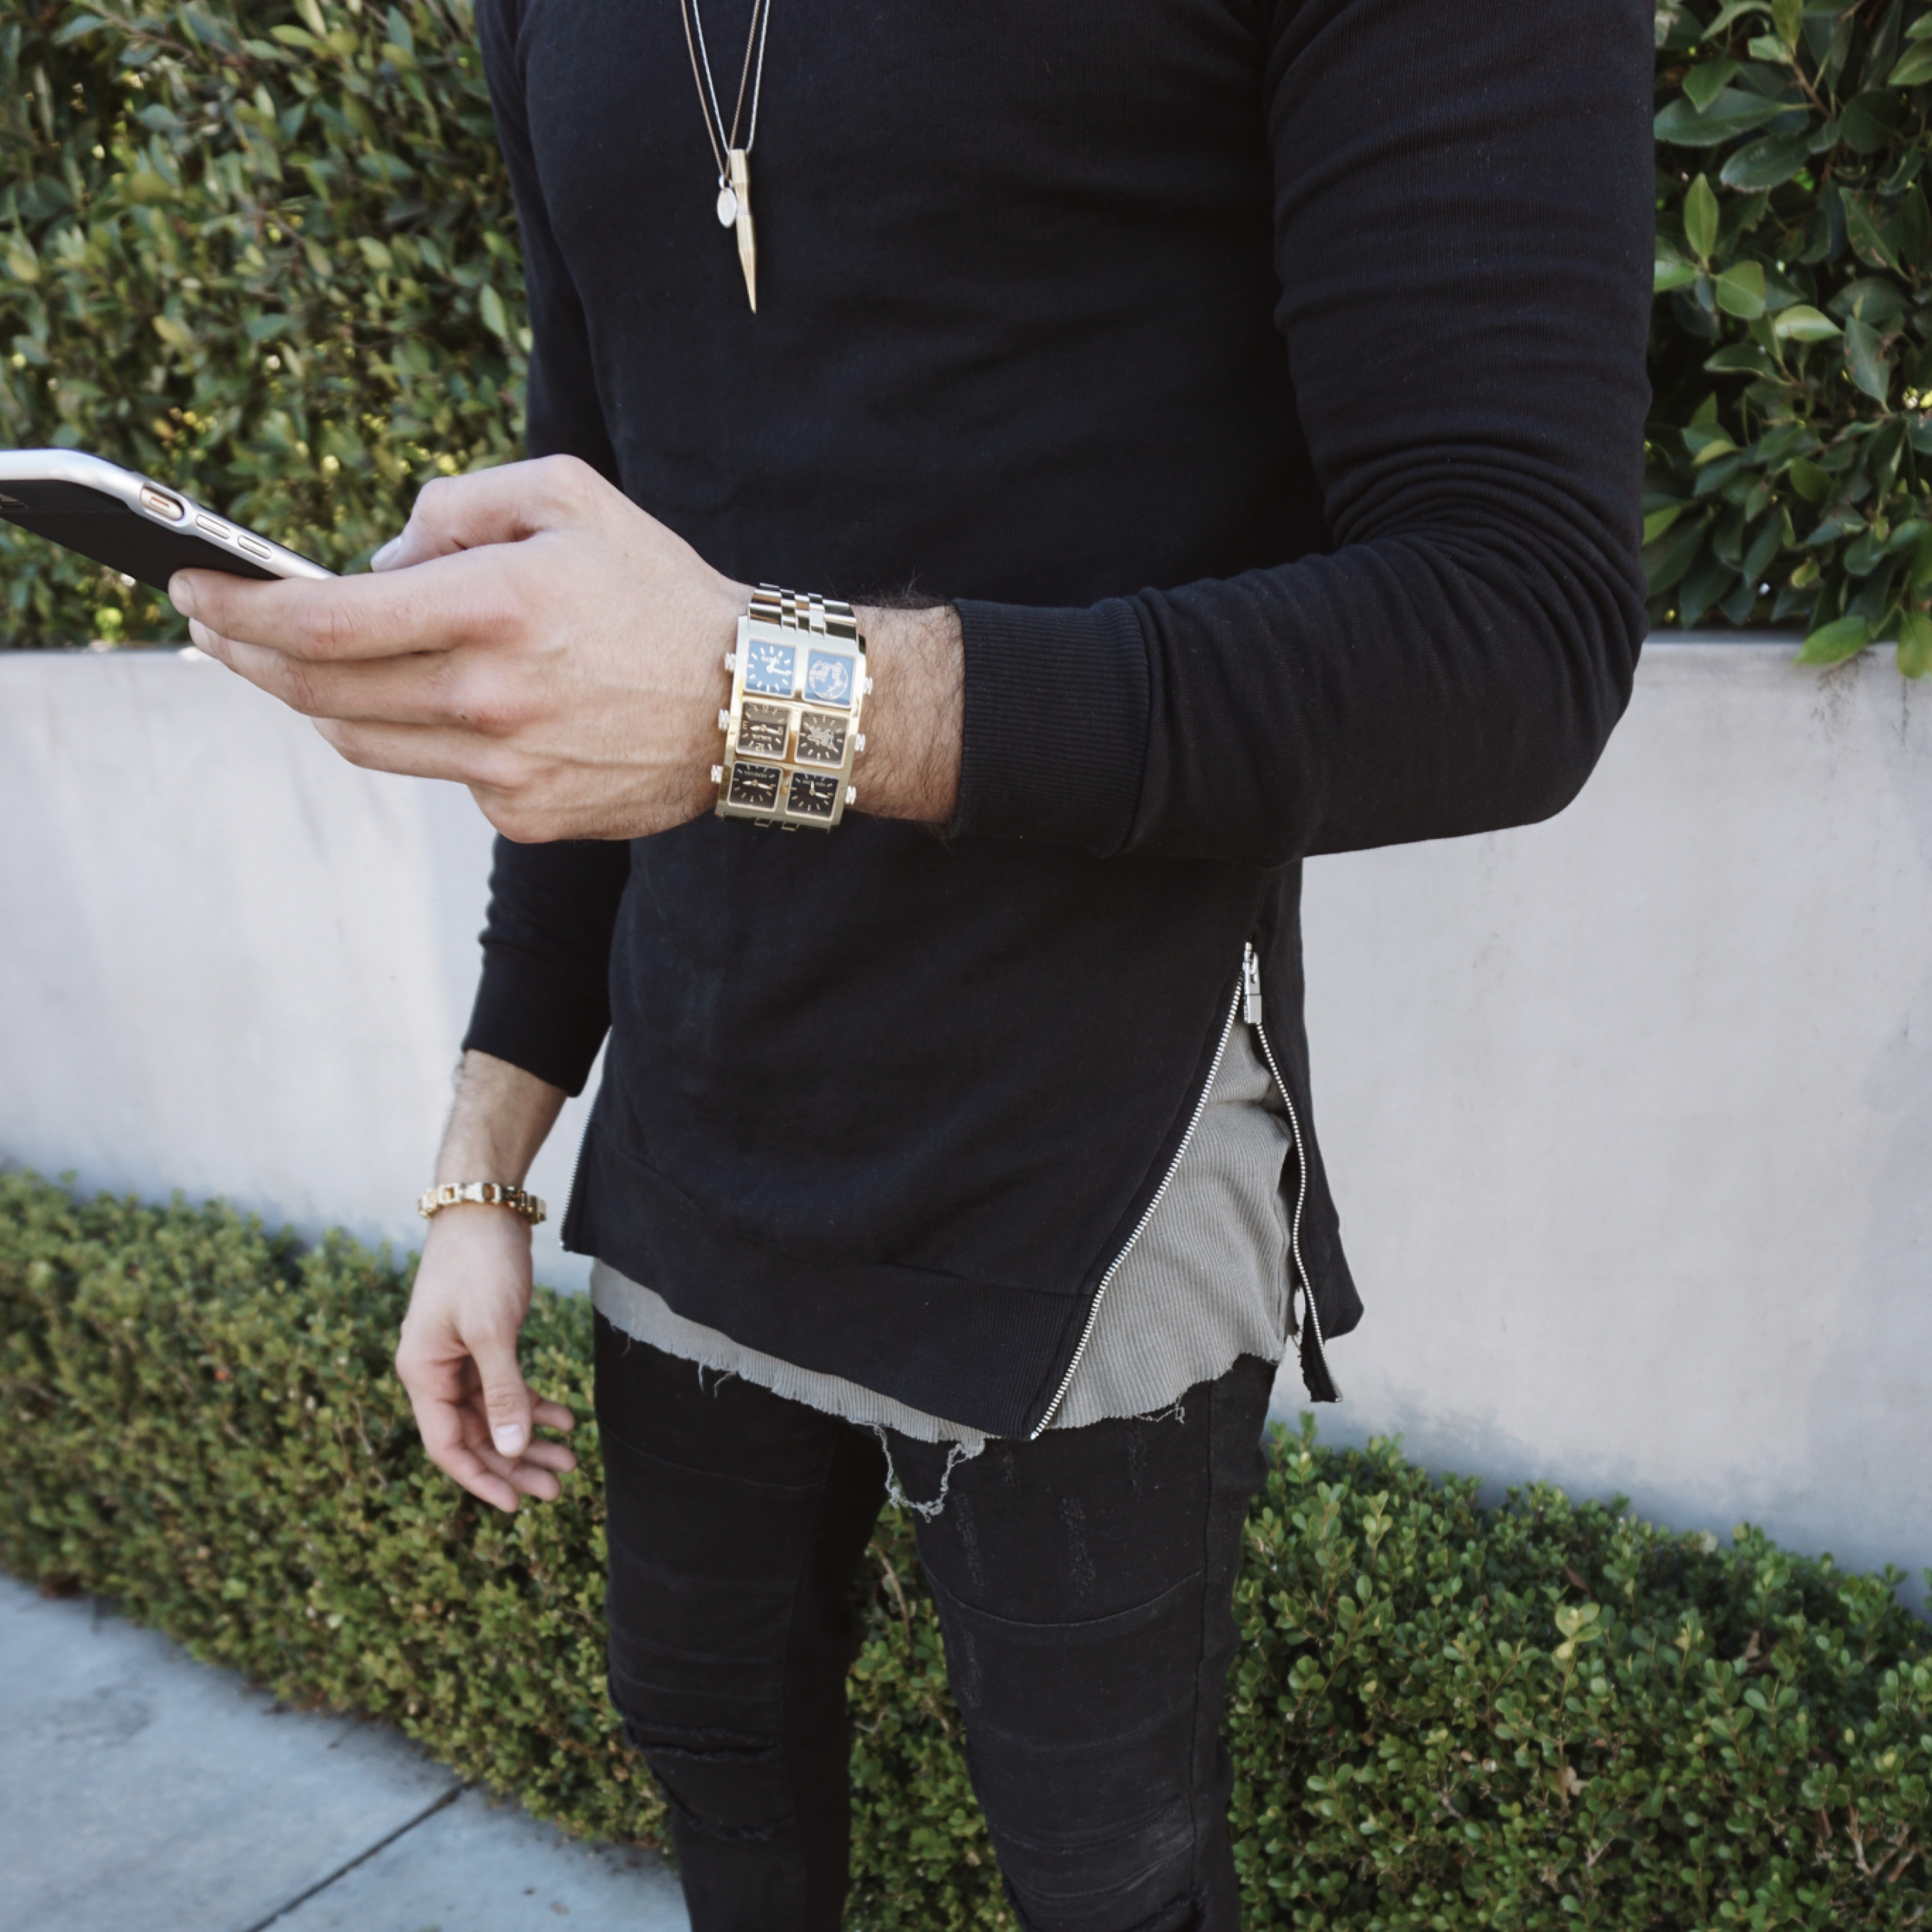 Wearing Arian 60mm Multi-Time Zone Watch holding phone